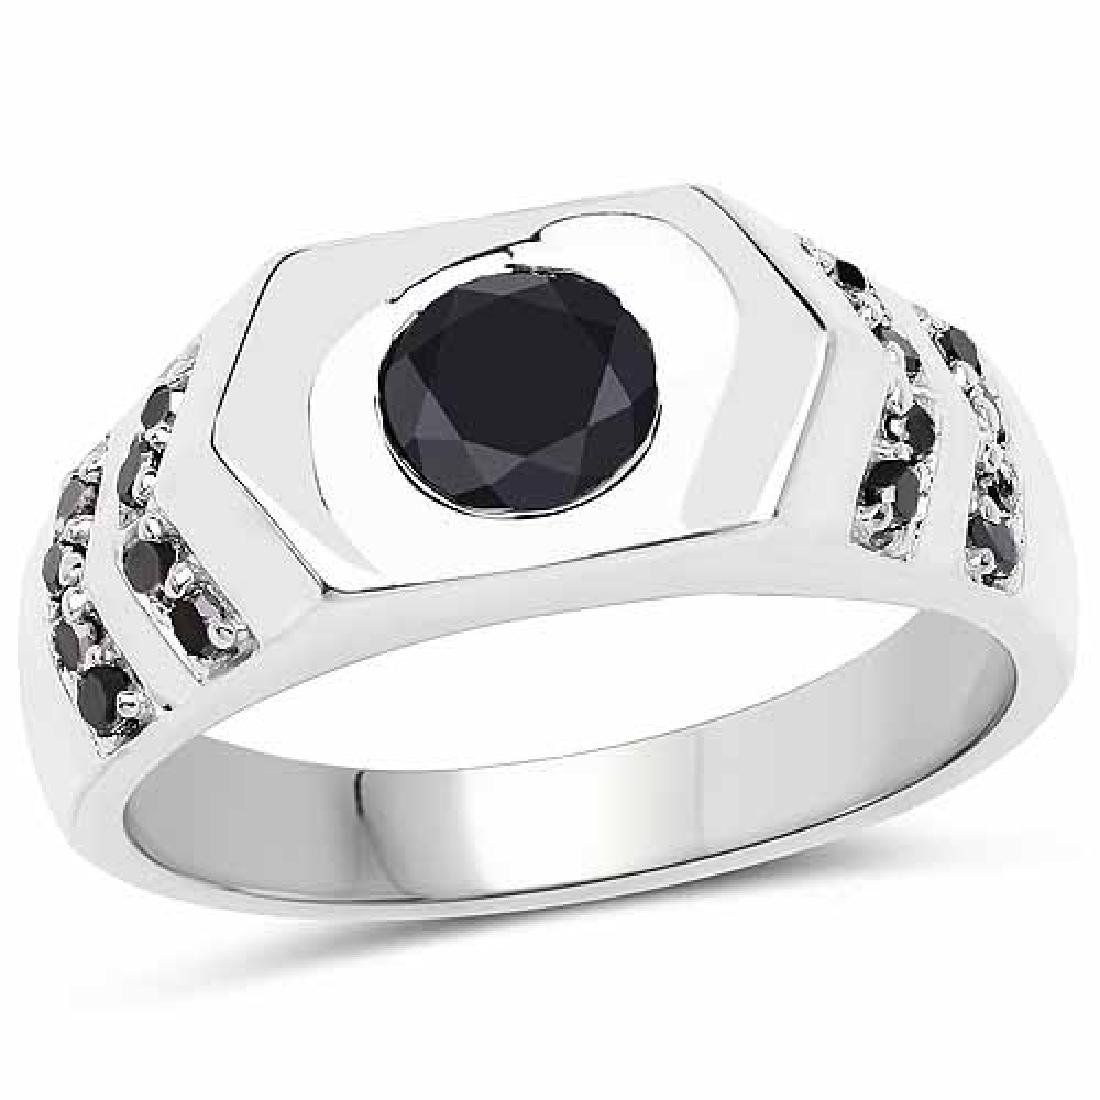 1.53 Carat Genuine Black Diamond .925 Sterling Silver R